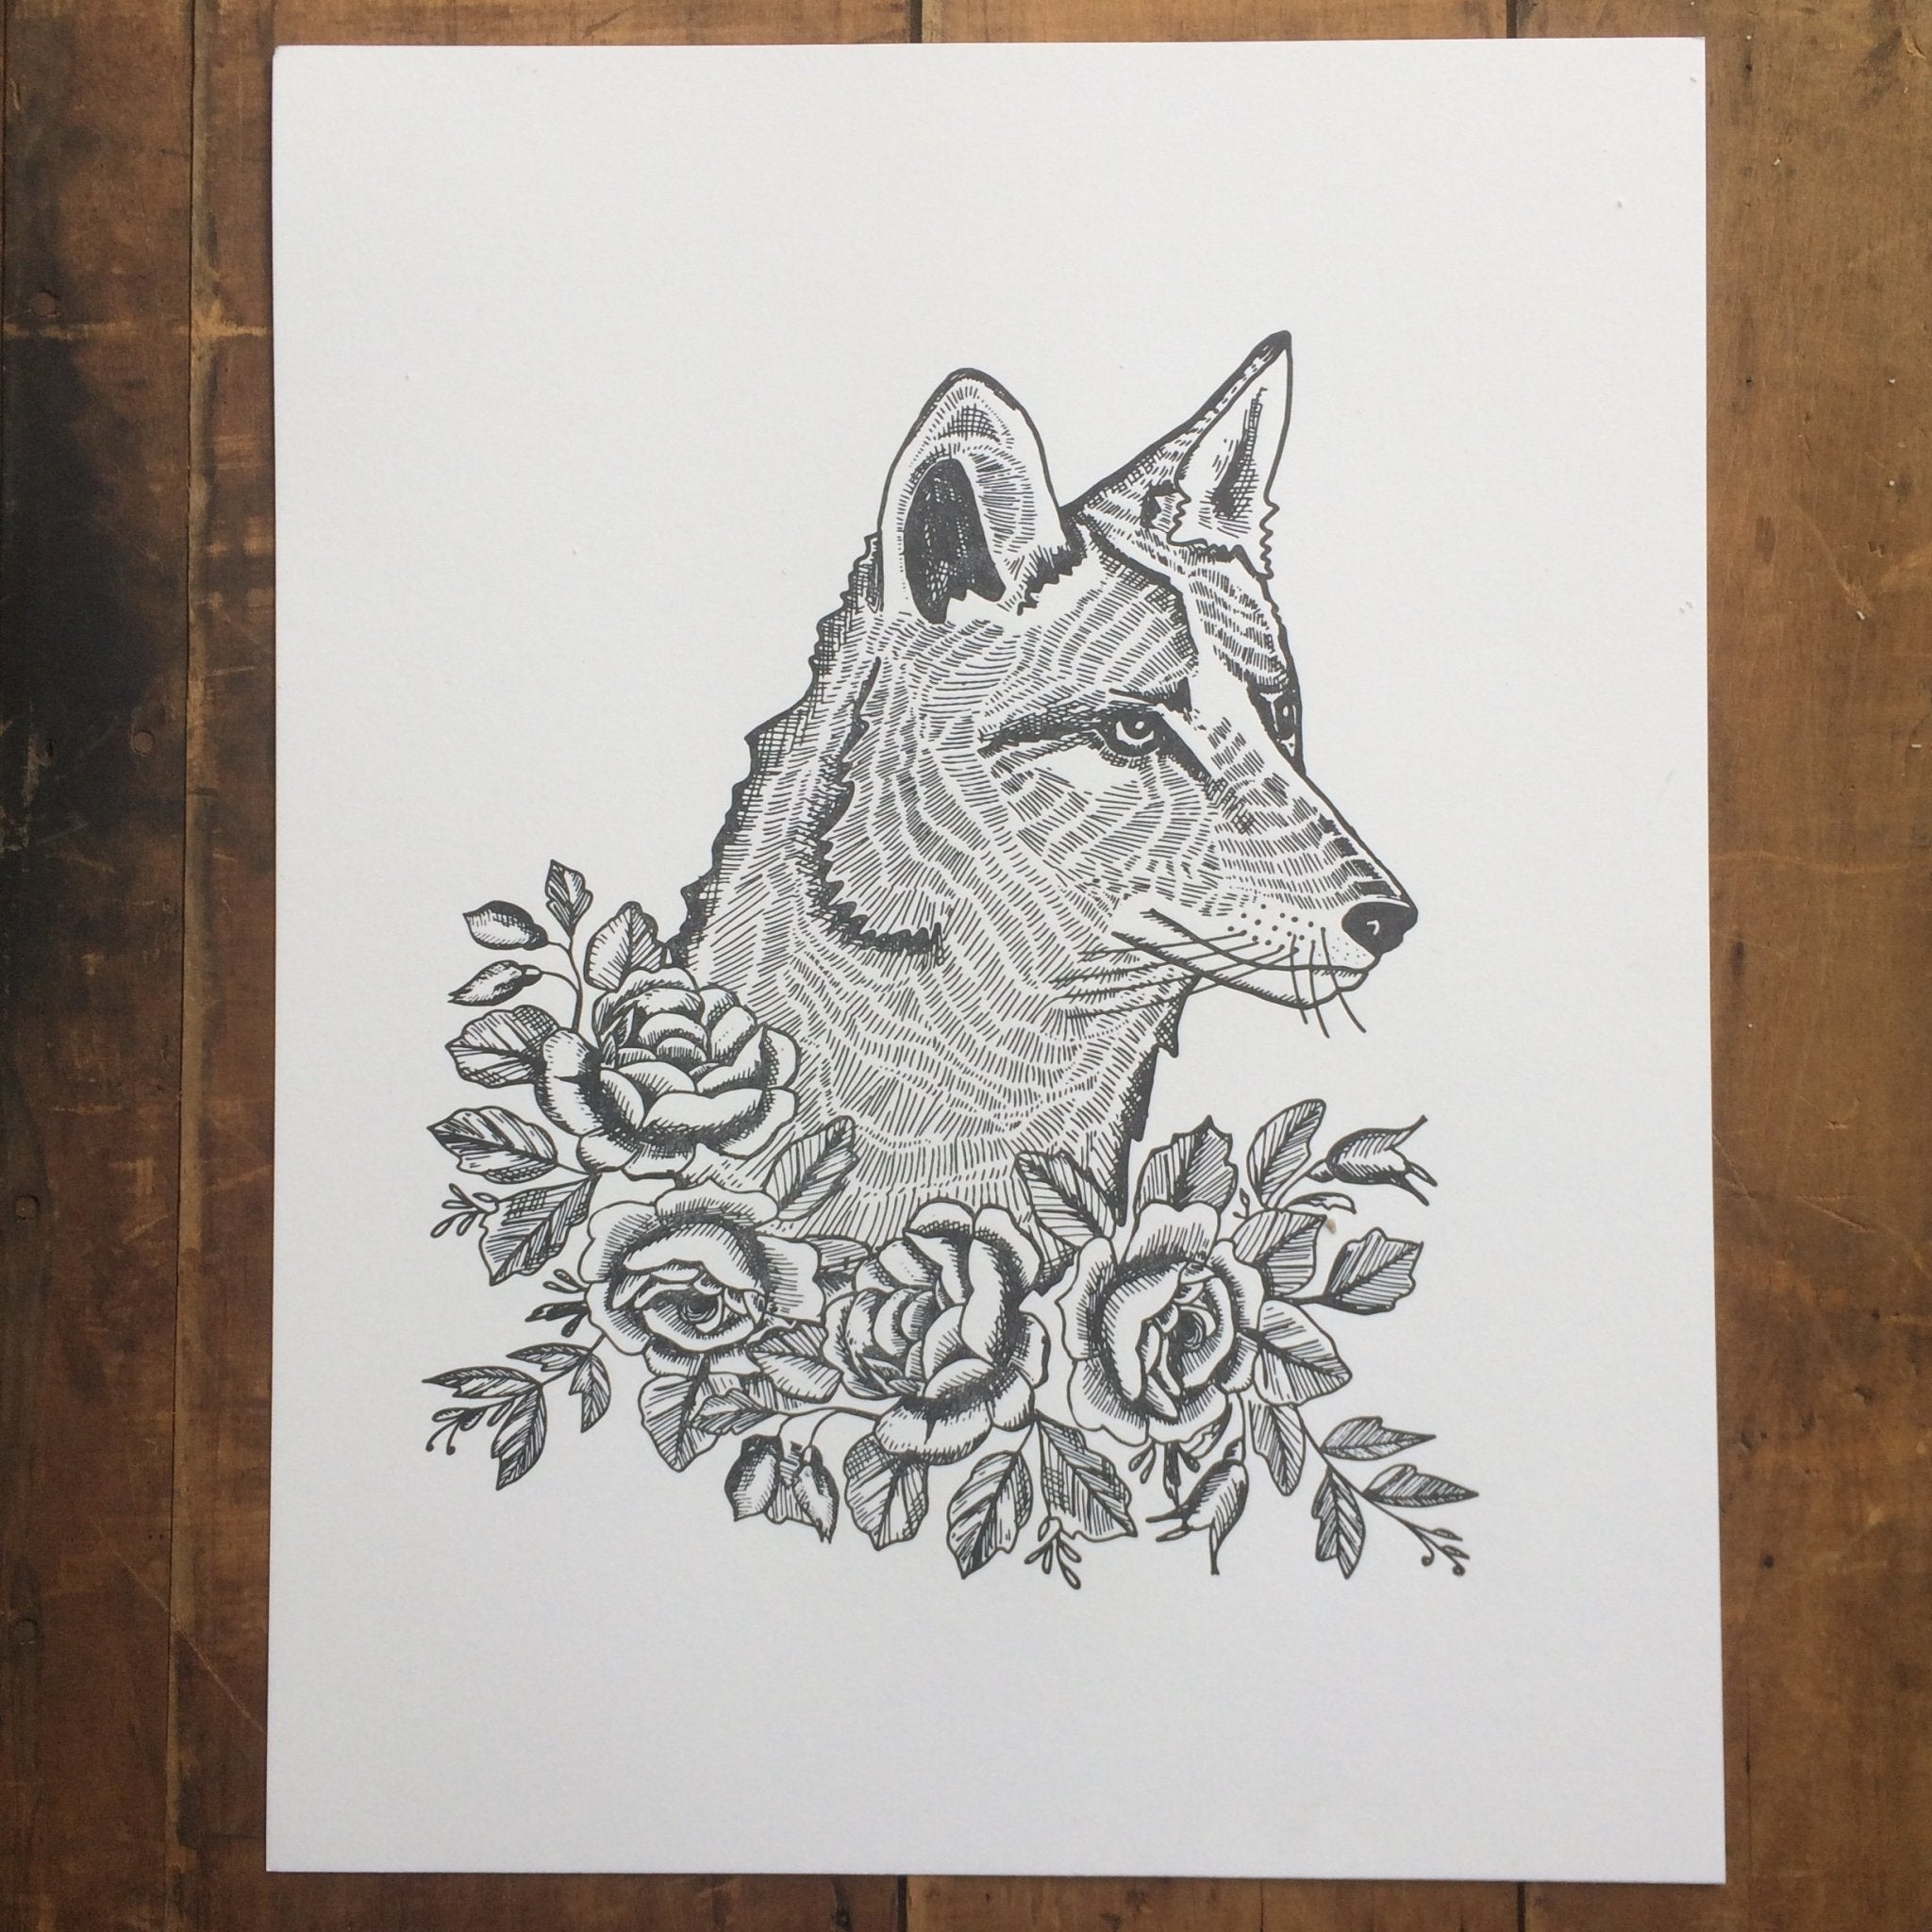 Coyote with Roses Letterpress Print 11x14 - Ratbee Press -Freehand Market